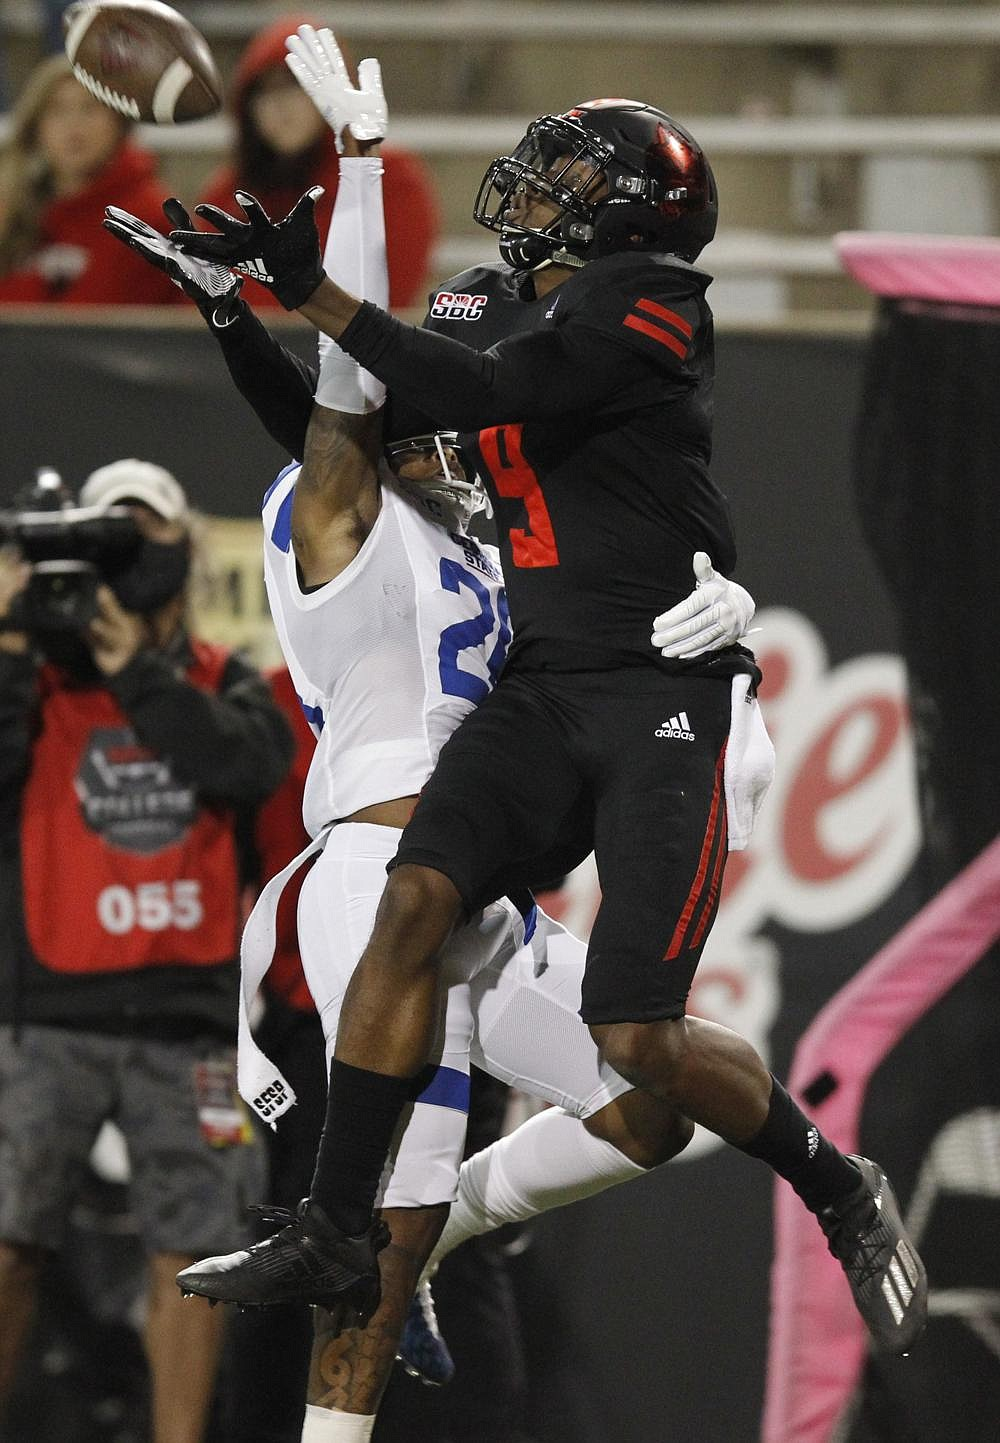 Jonathan Adams grew into a leadership role at Arkansas State during his four years, becoming one of the top wideouts in the nation as he caught 79 passes for 1,111 yards and 12 touchdowns this season. Adams, who was named Sun Belt Conference Offensive Player of the Year, now turns his attention to the NFL Draft and will train in Texas to prepare.